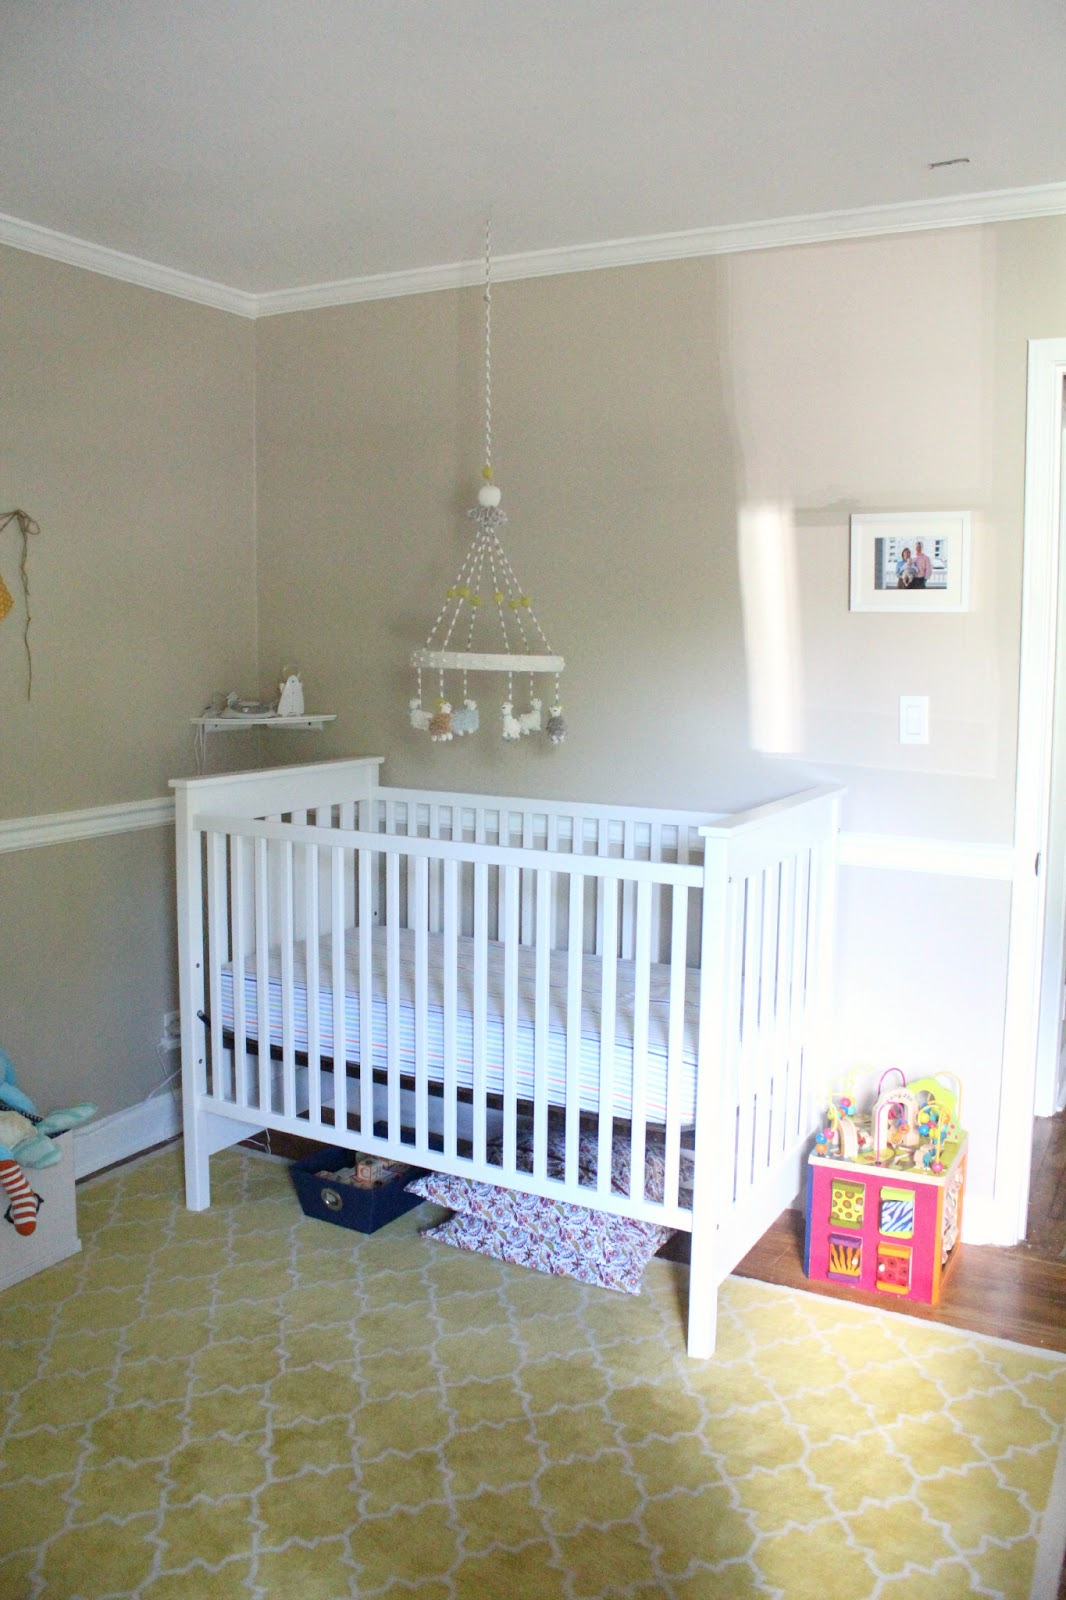 Ten June Our Rental House The Nursery Tour